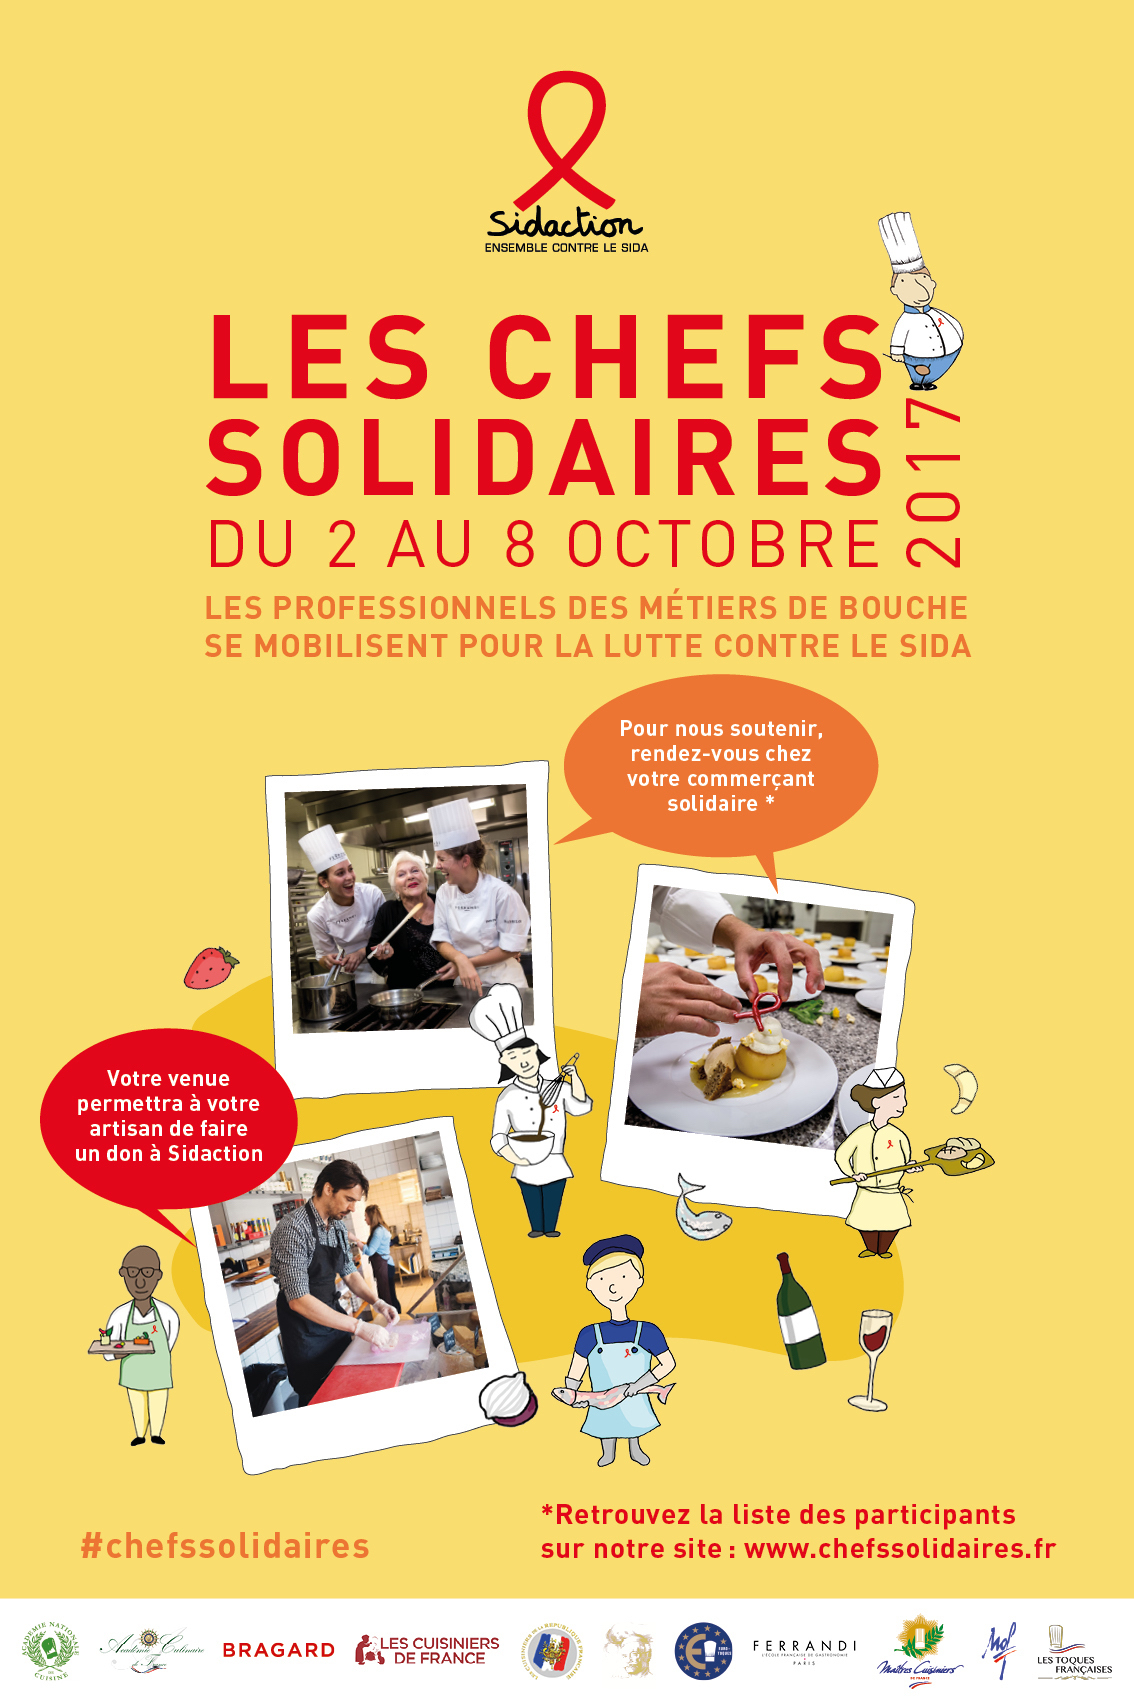 Les chefs solidaires 2017